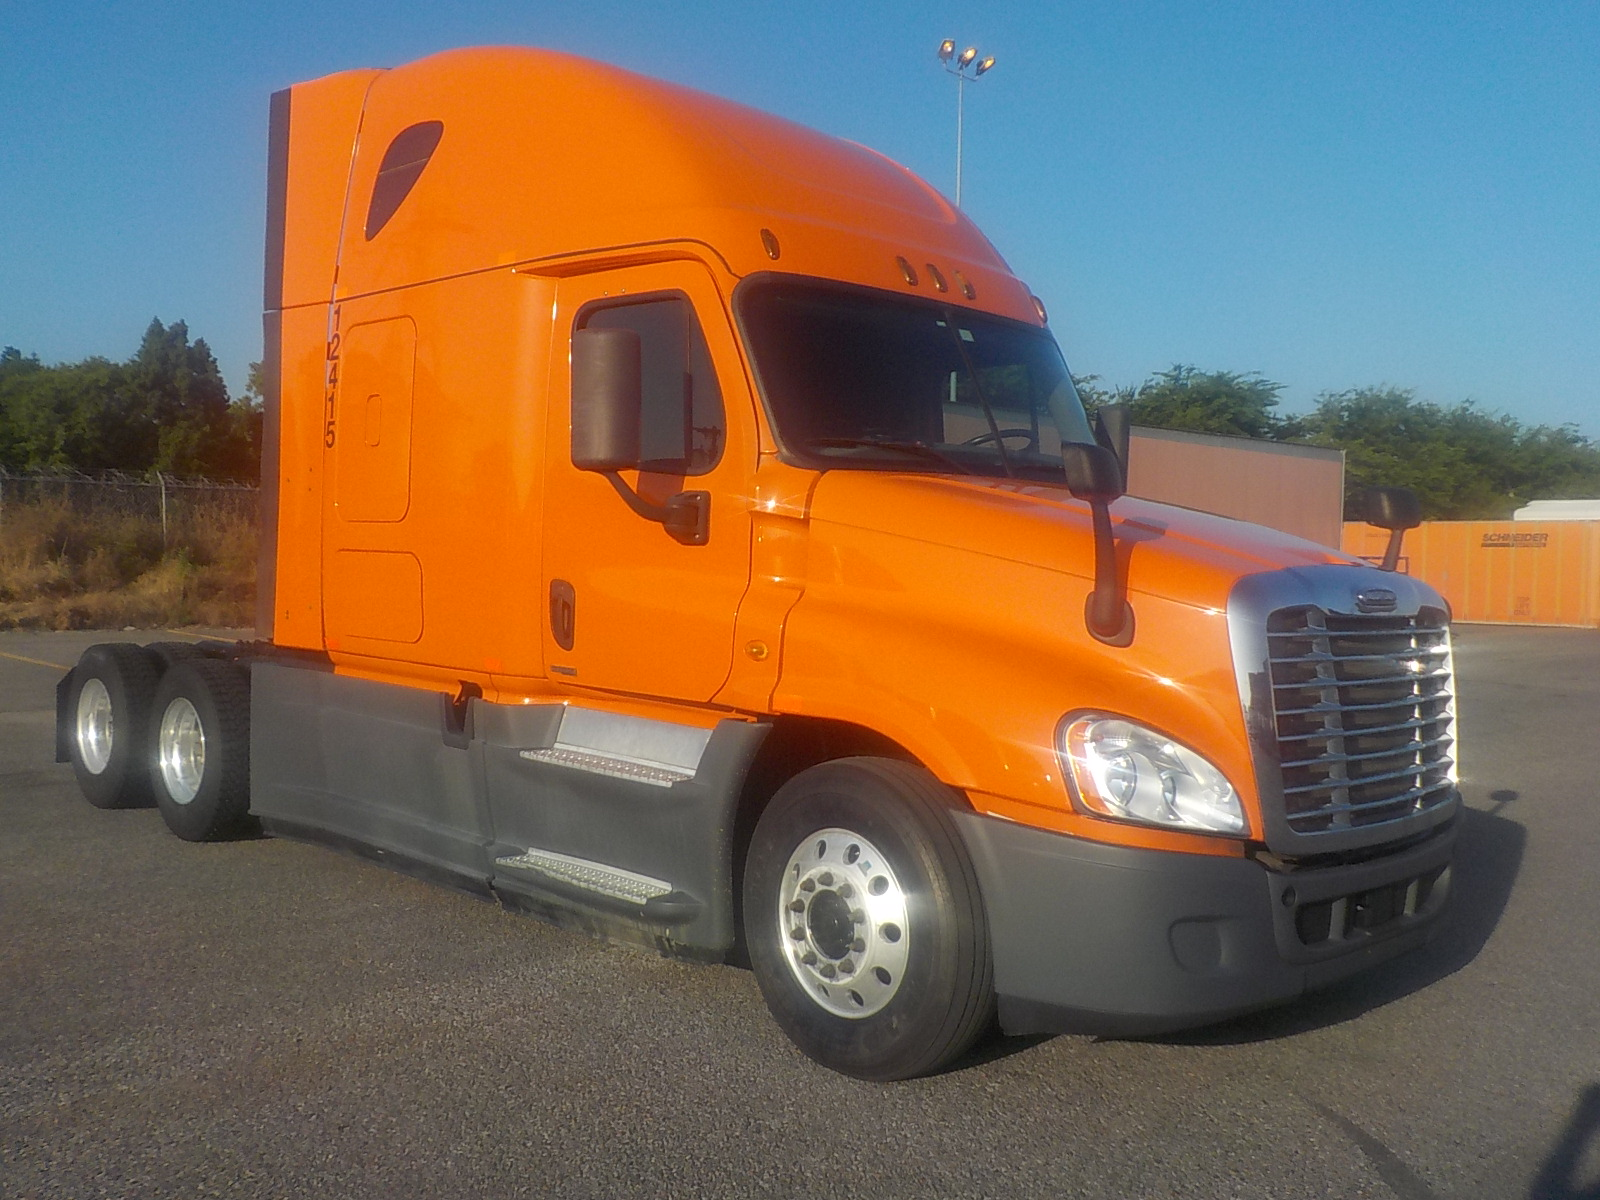 USED 2014 FREIGHTLINER CASCADIA SLEEPER TRUCK #84572